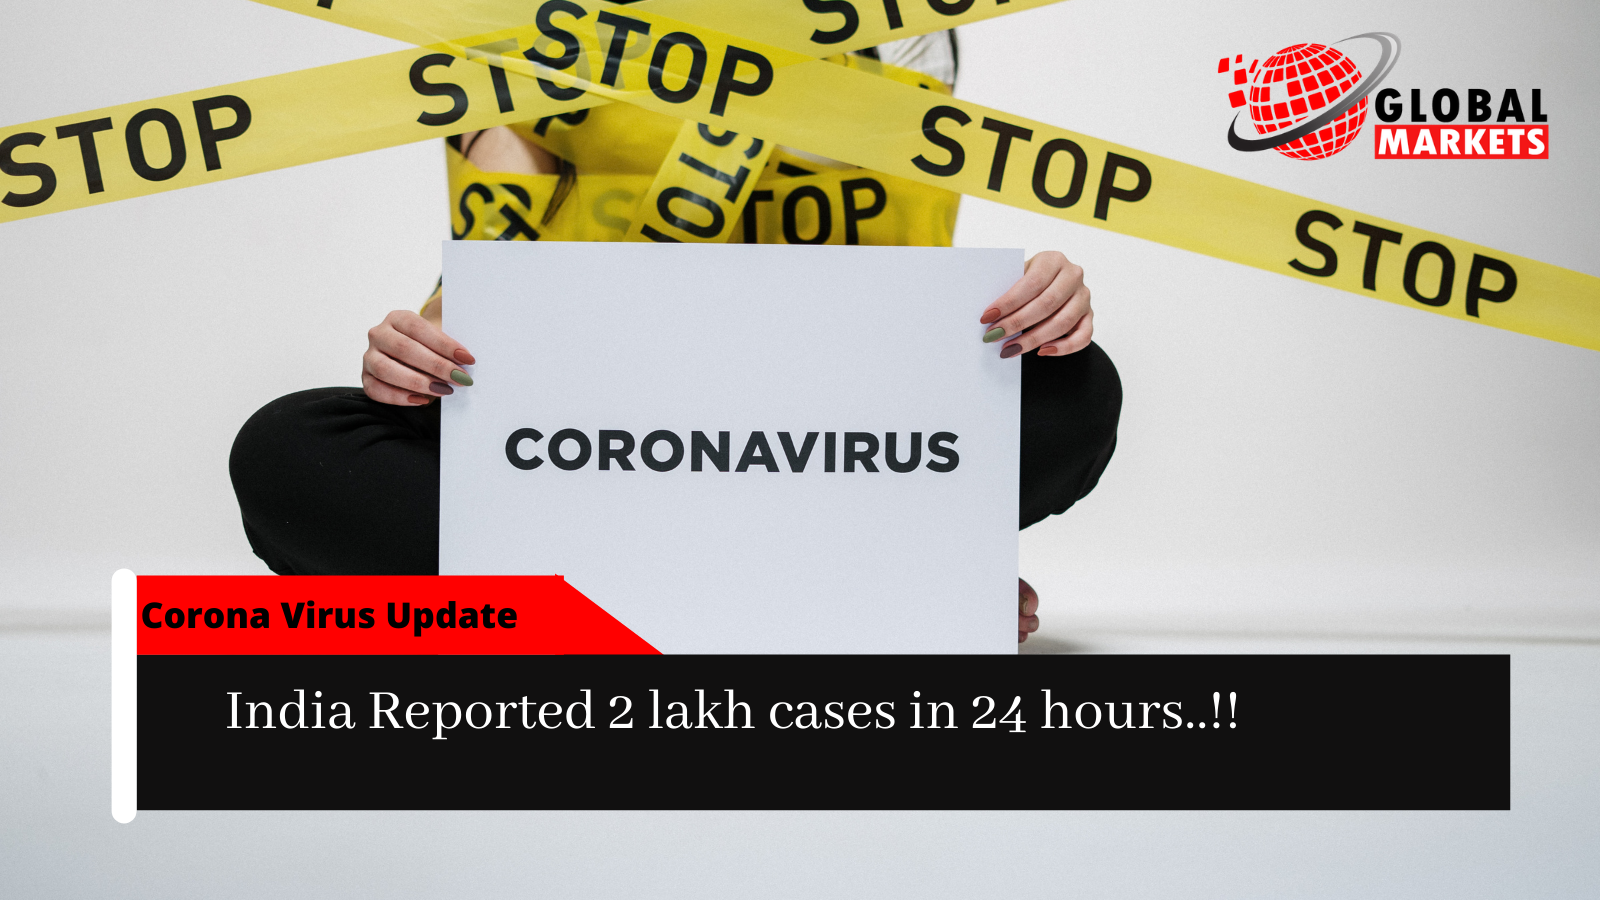 CORONA VIRUS UPDATE:India reported 2 lakh cases in 24 hrs